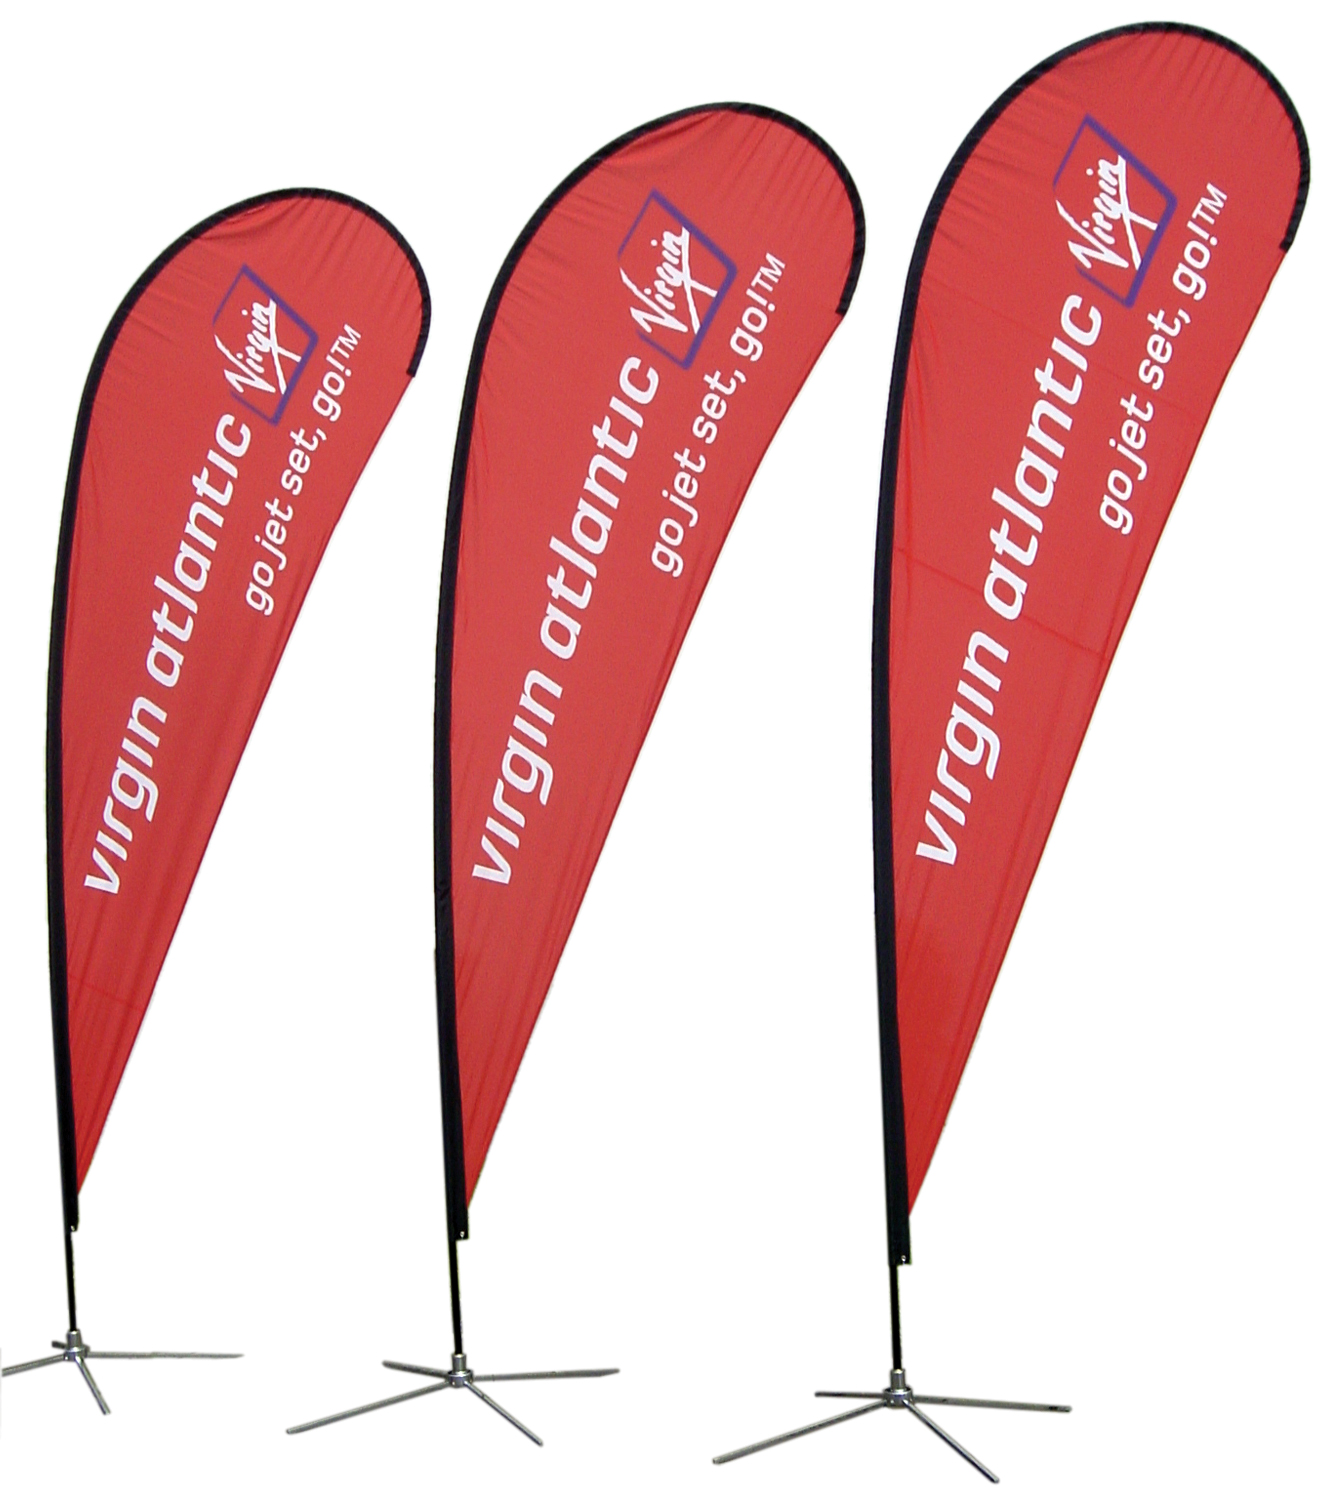 Teardrop Flags Custom Printed Vancouver, with delivery to Coquitlam, Burnaby, Langley, Richmond, North Vancouver, West Vancouver, Lower Mainland & Fraser Valley